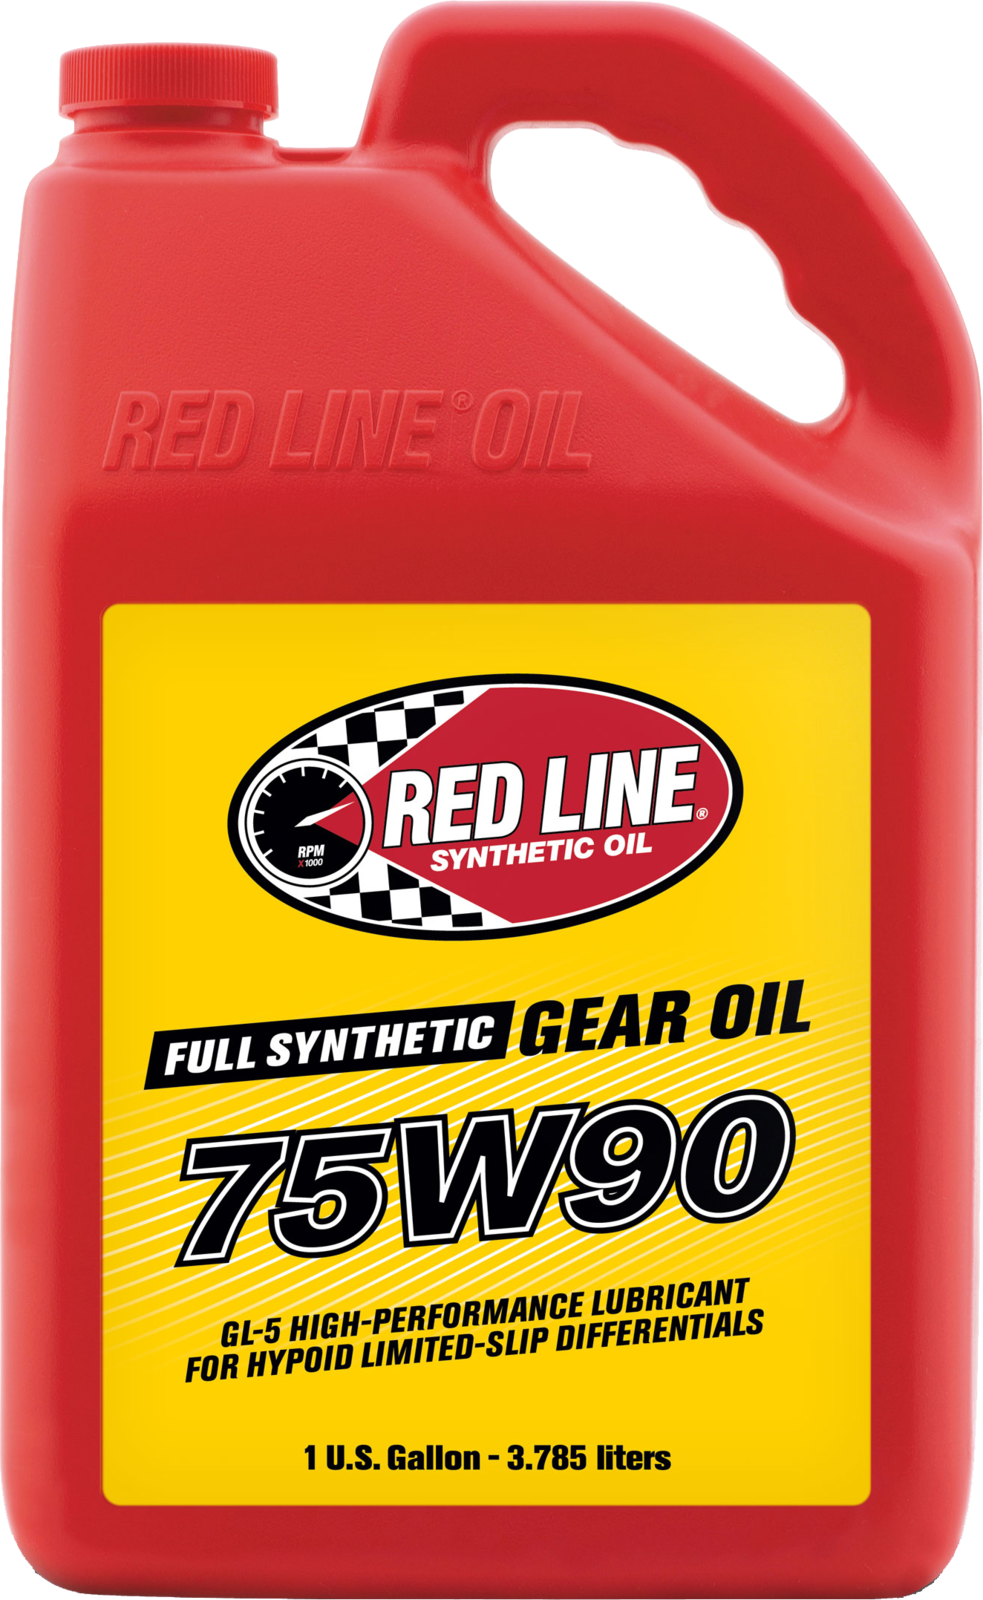 Red Line Fully Synthetic 75W90 GL-5 Gear Oil